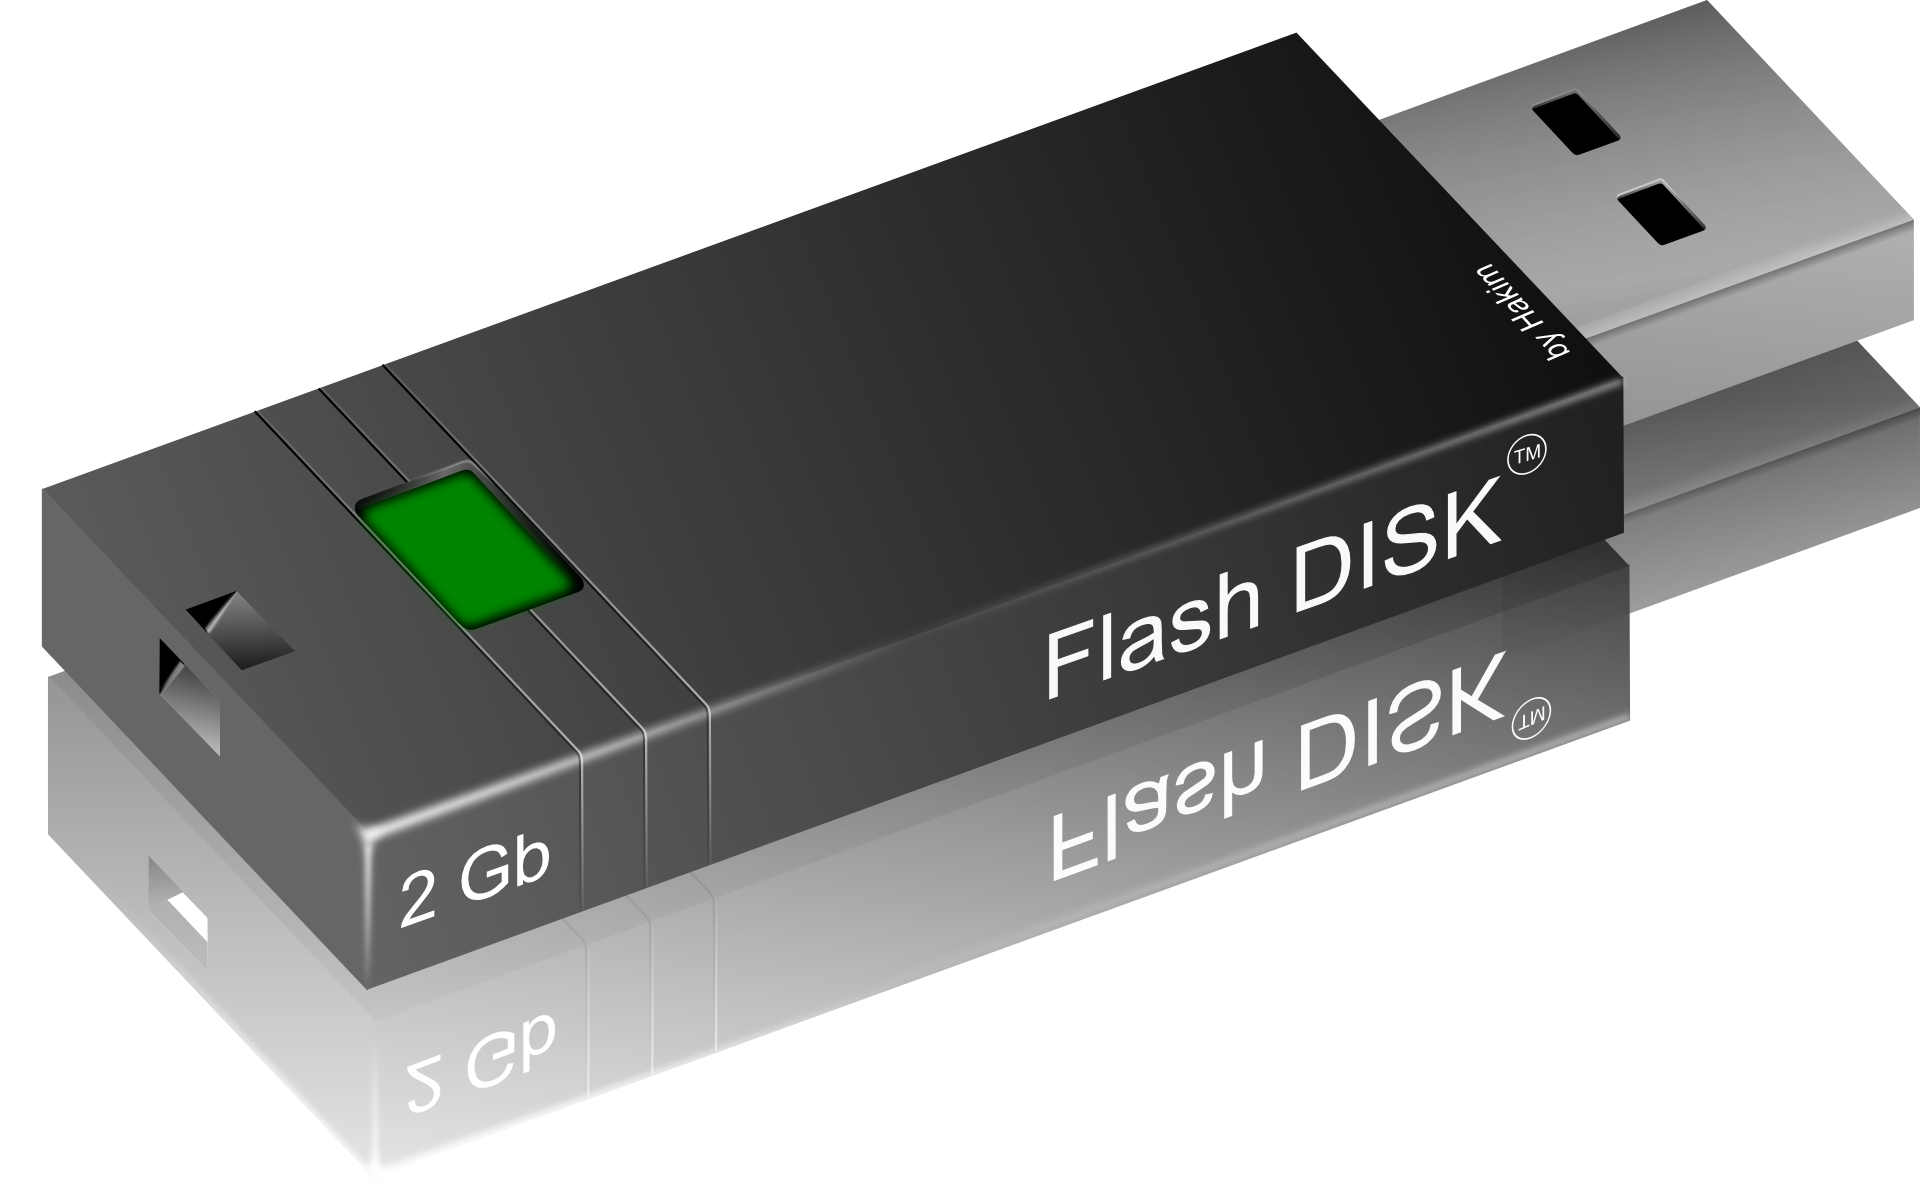 Black Flash disk,USB drives vector